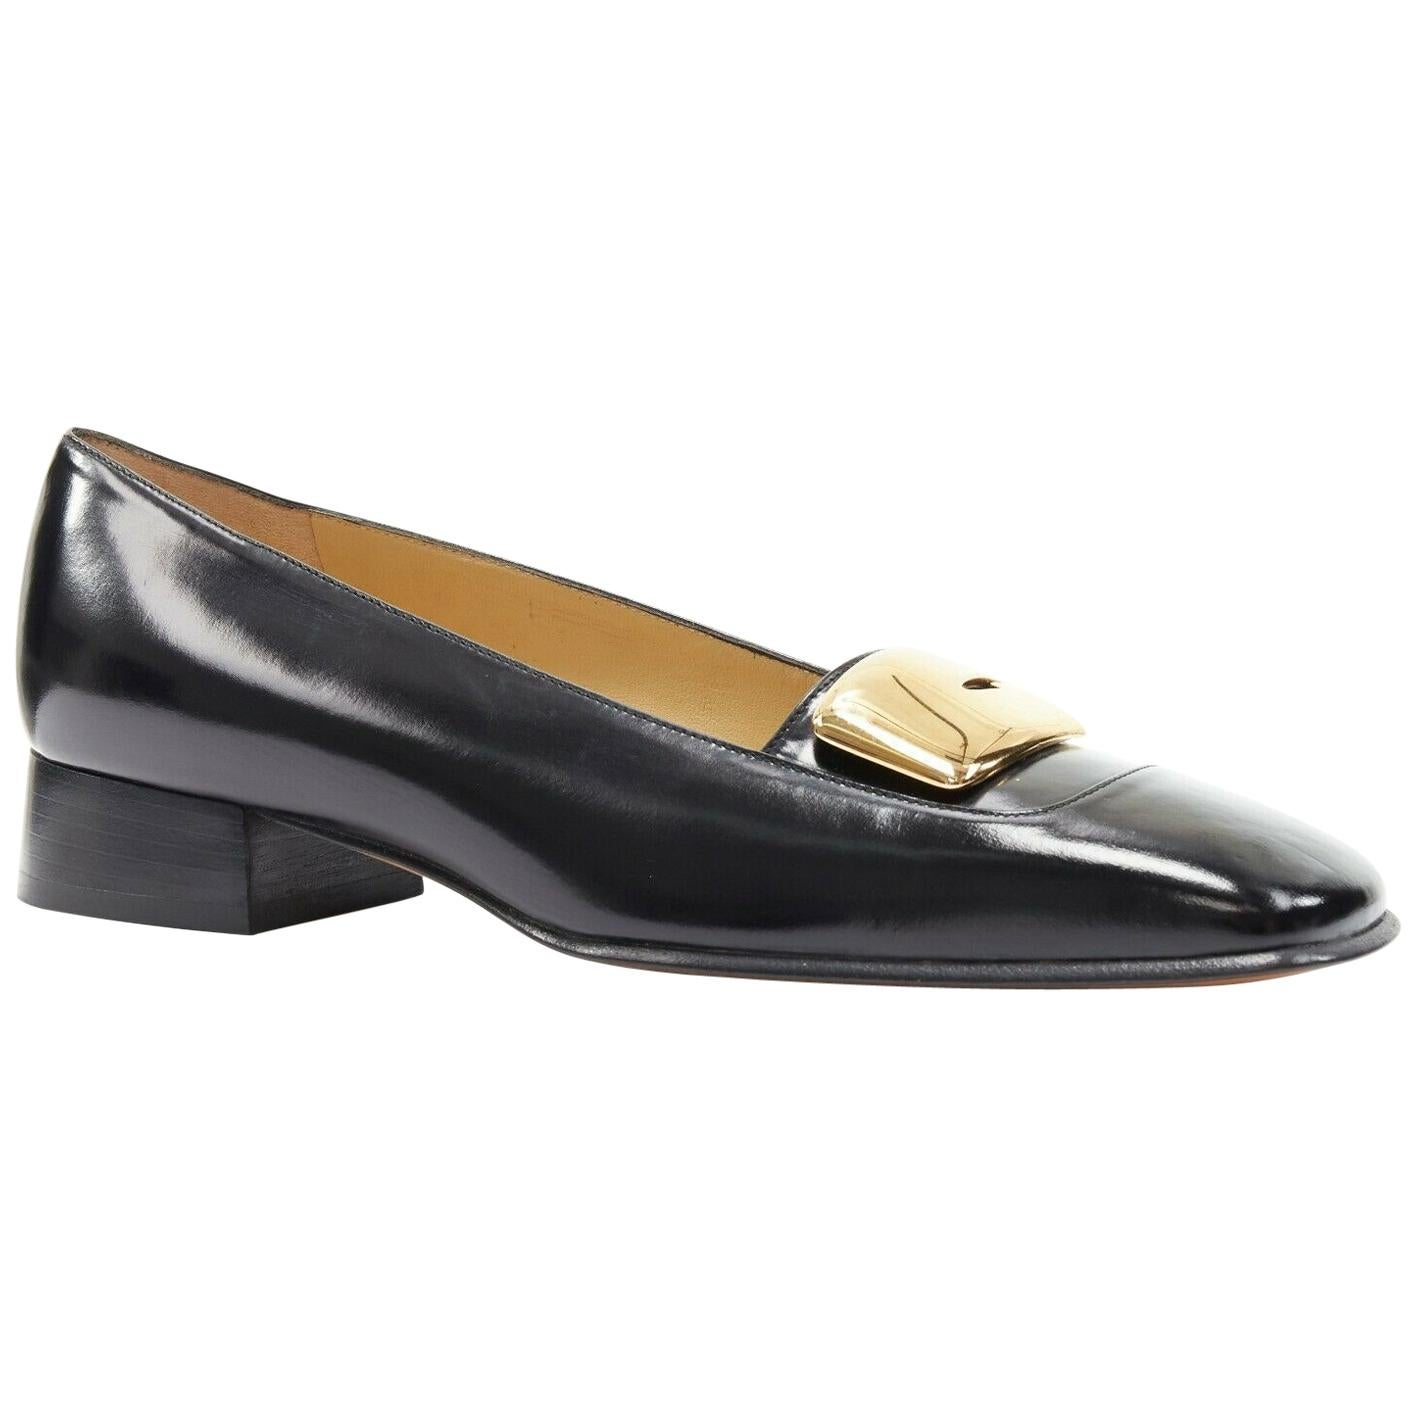 new GUCCI TOM FORD gold buckle polished gold leather square toe loafer EU36.5C